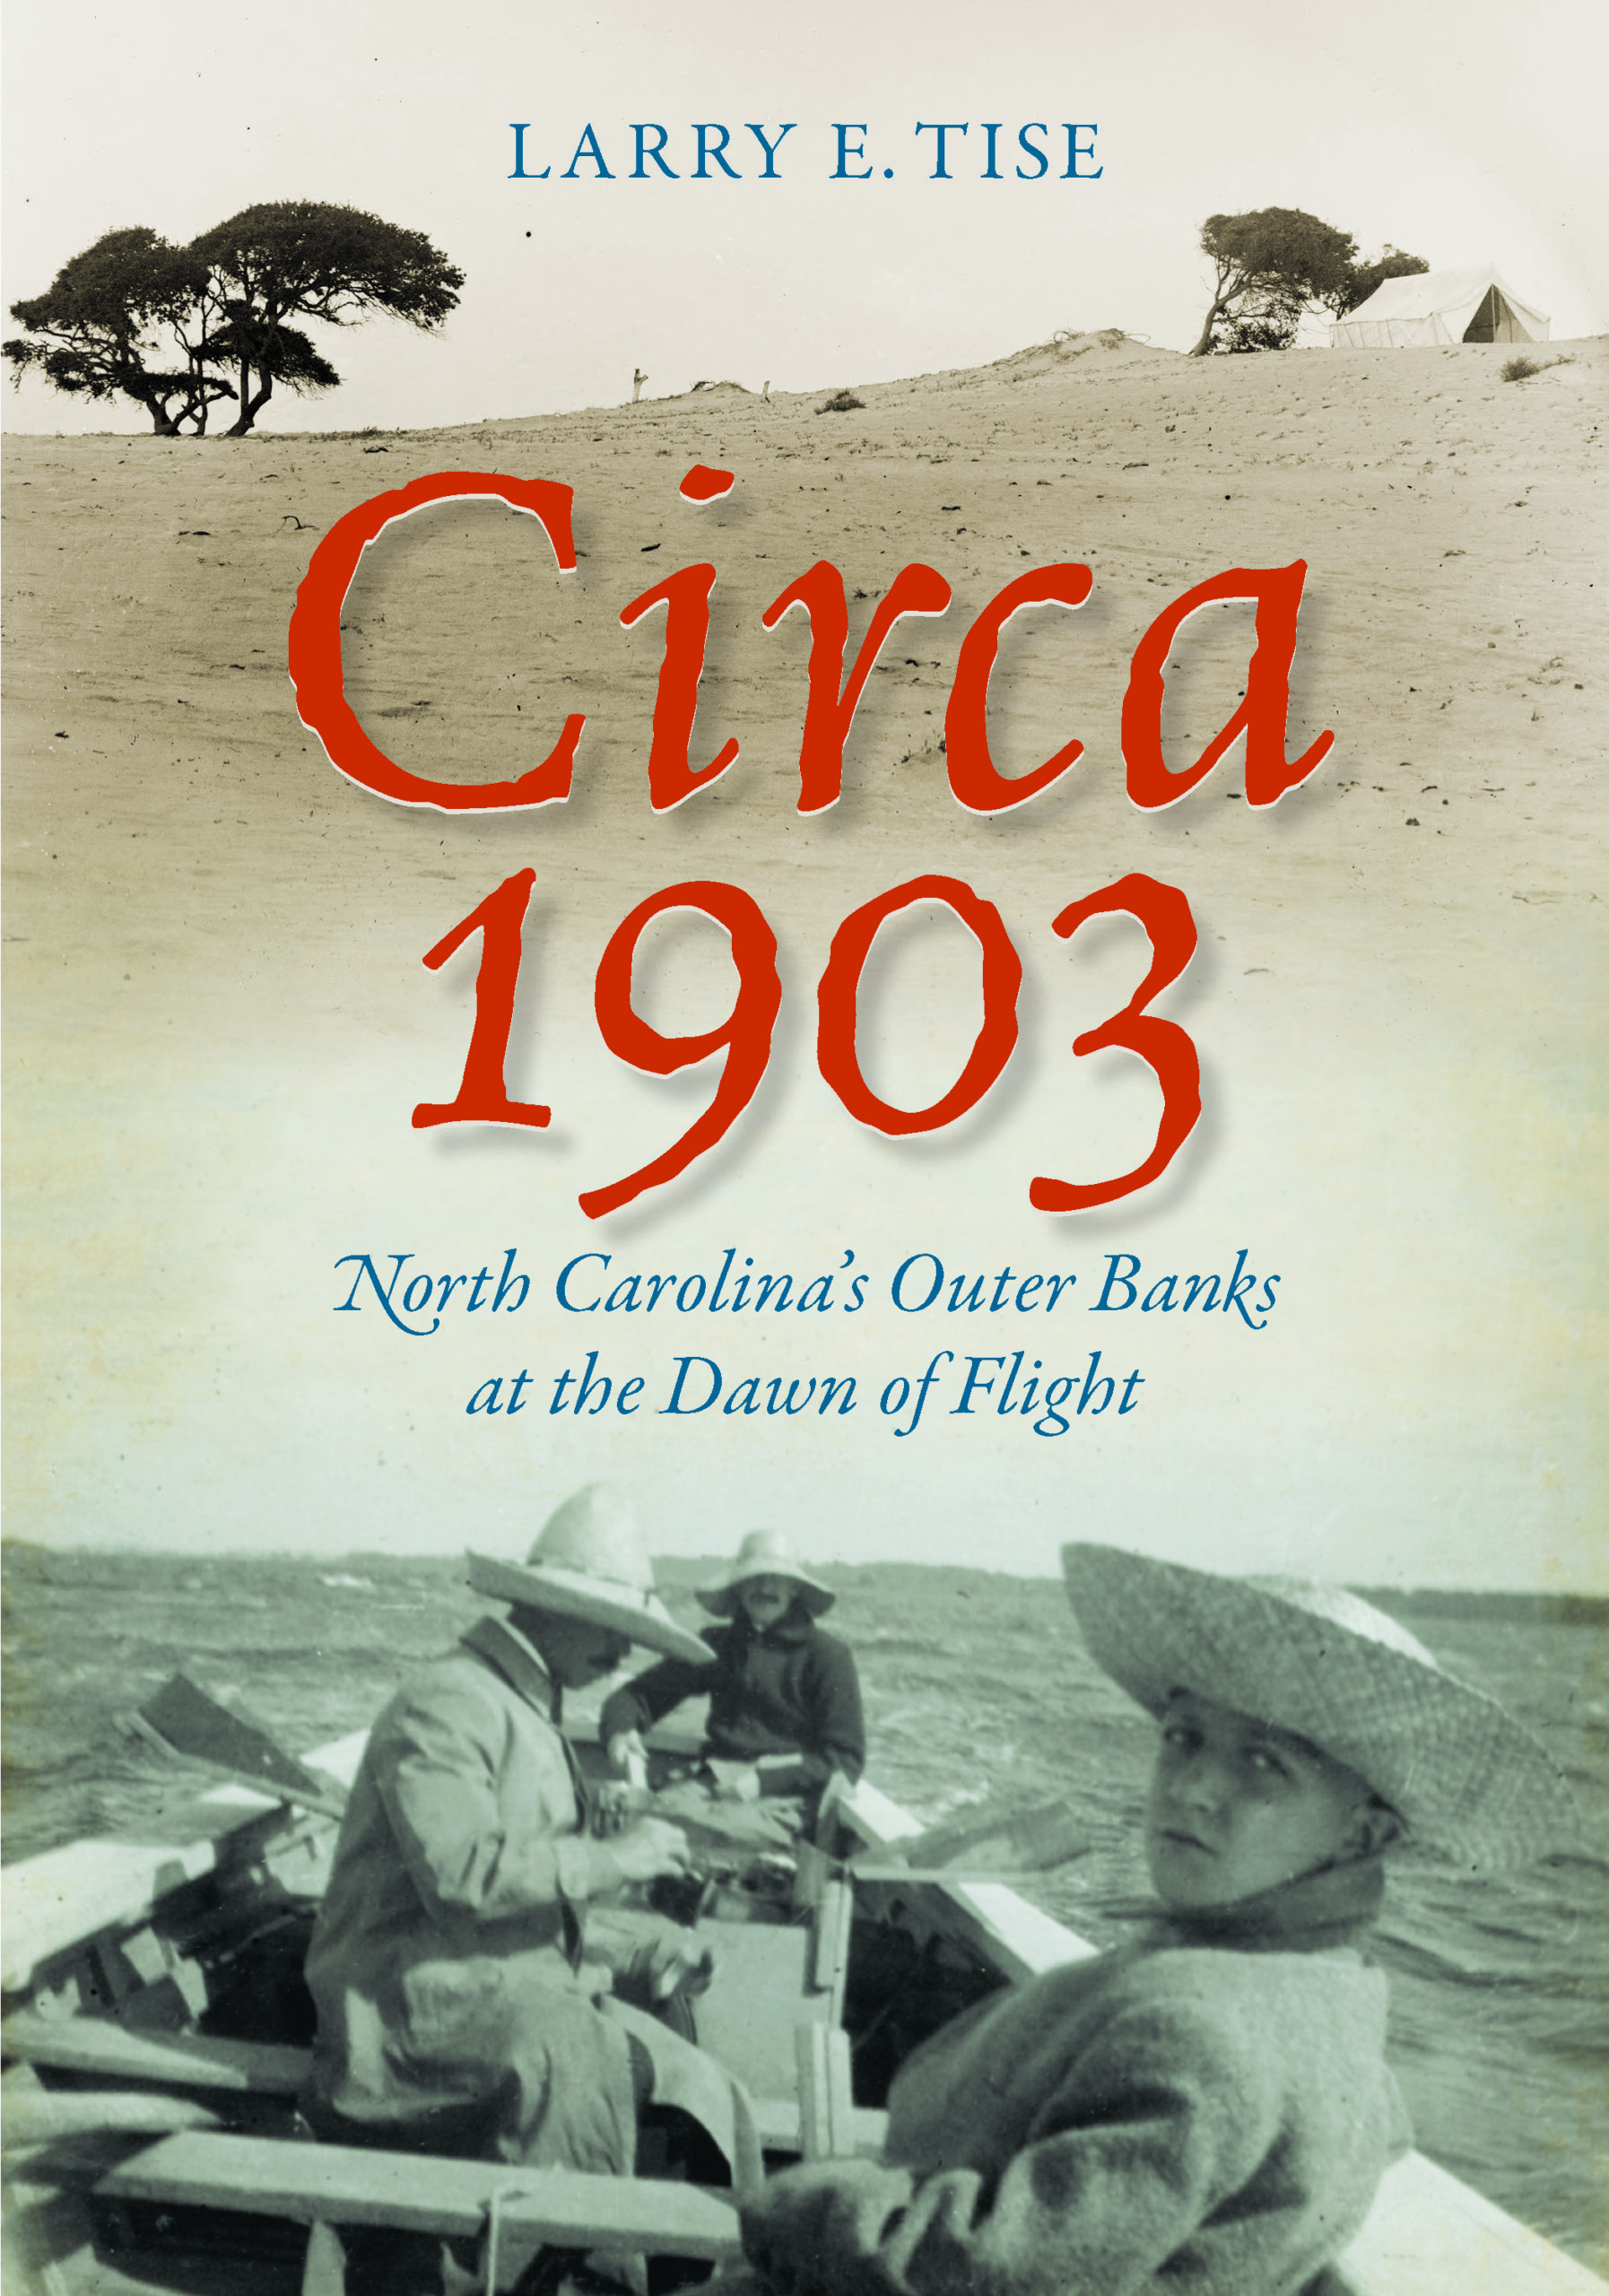 "To order <em>Circa 1903: North Carolina's Outer Banks at the Dawn of Flight</em>, visit <a href=""https://uncpress.org/book/9781469651149/circa-1903/"" target=""_blank"" rel=""noopener noreferrer"">go.ncsu.edu/circa1903</a>"